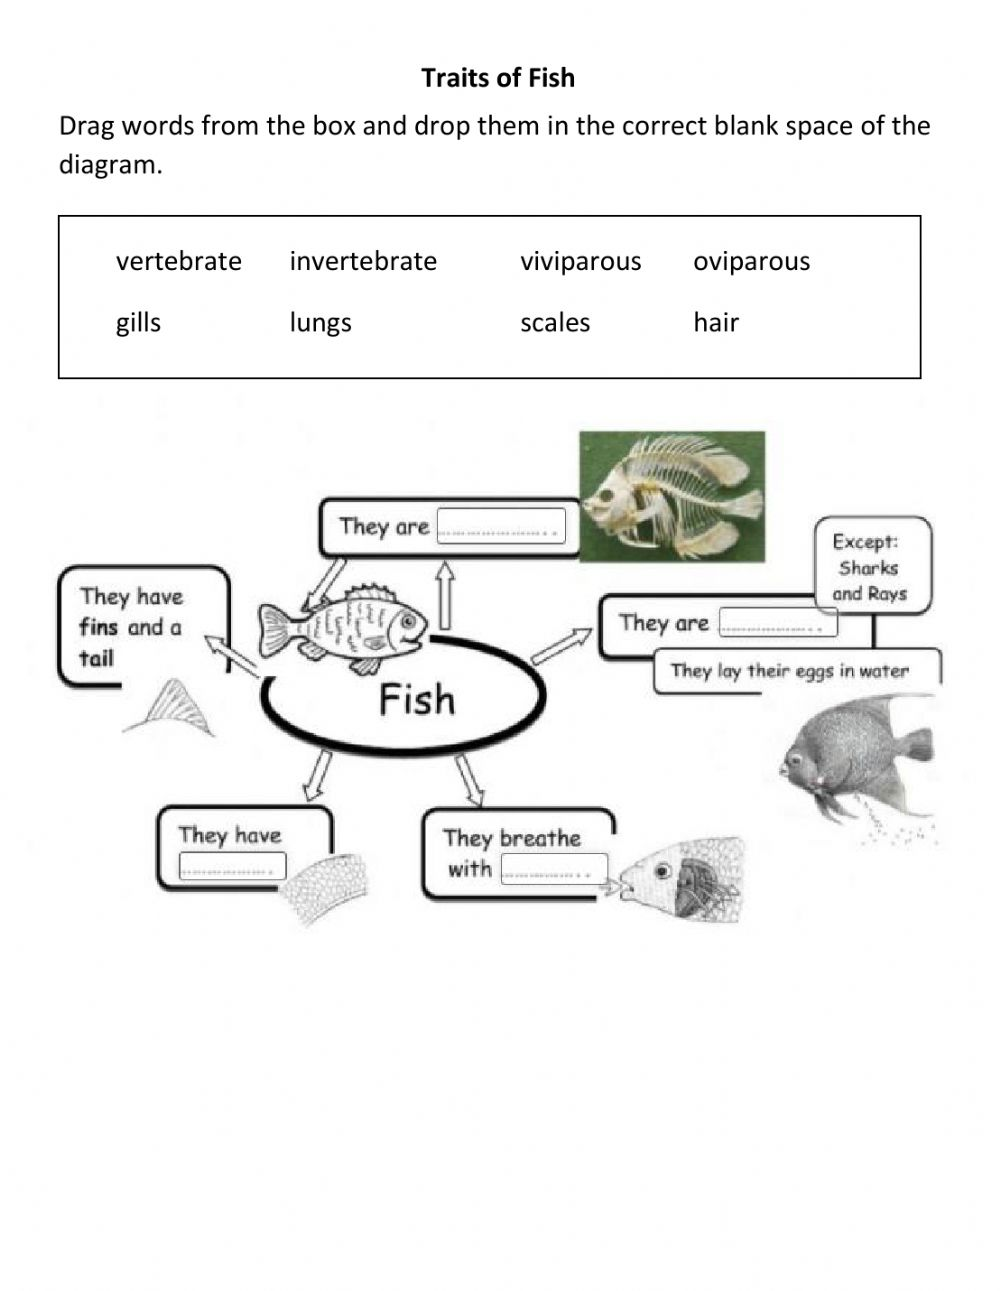 Fish traits worksheet